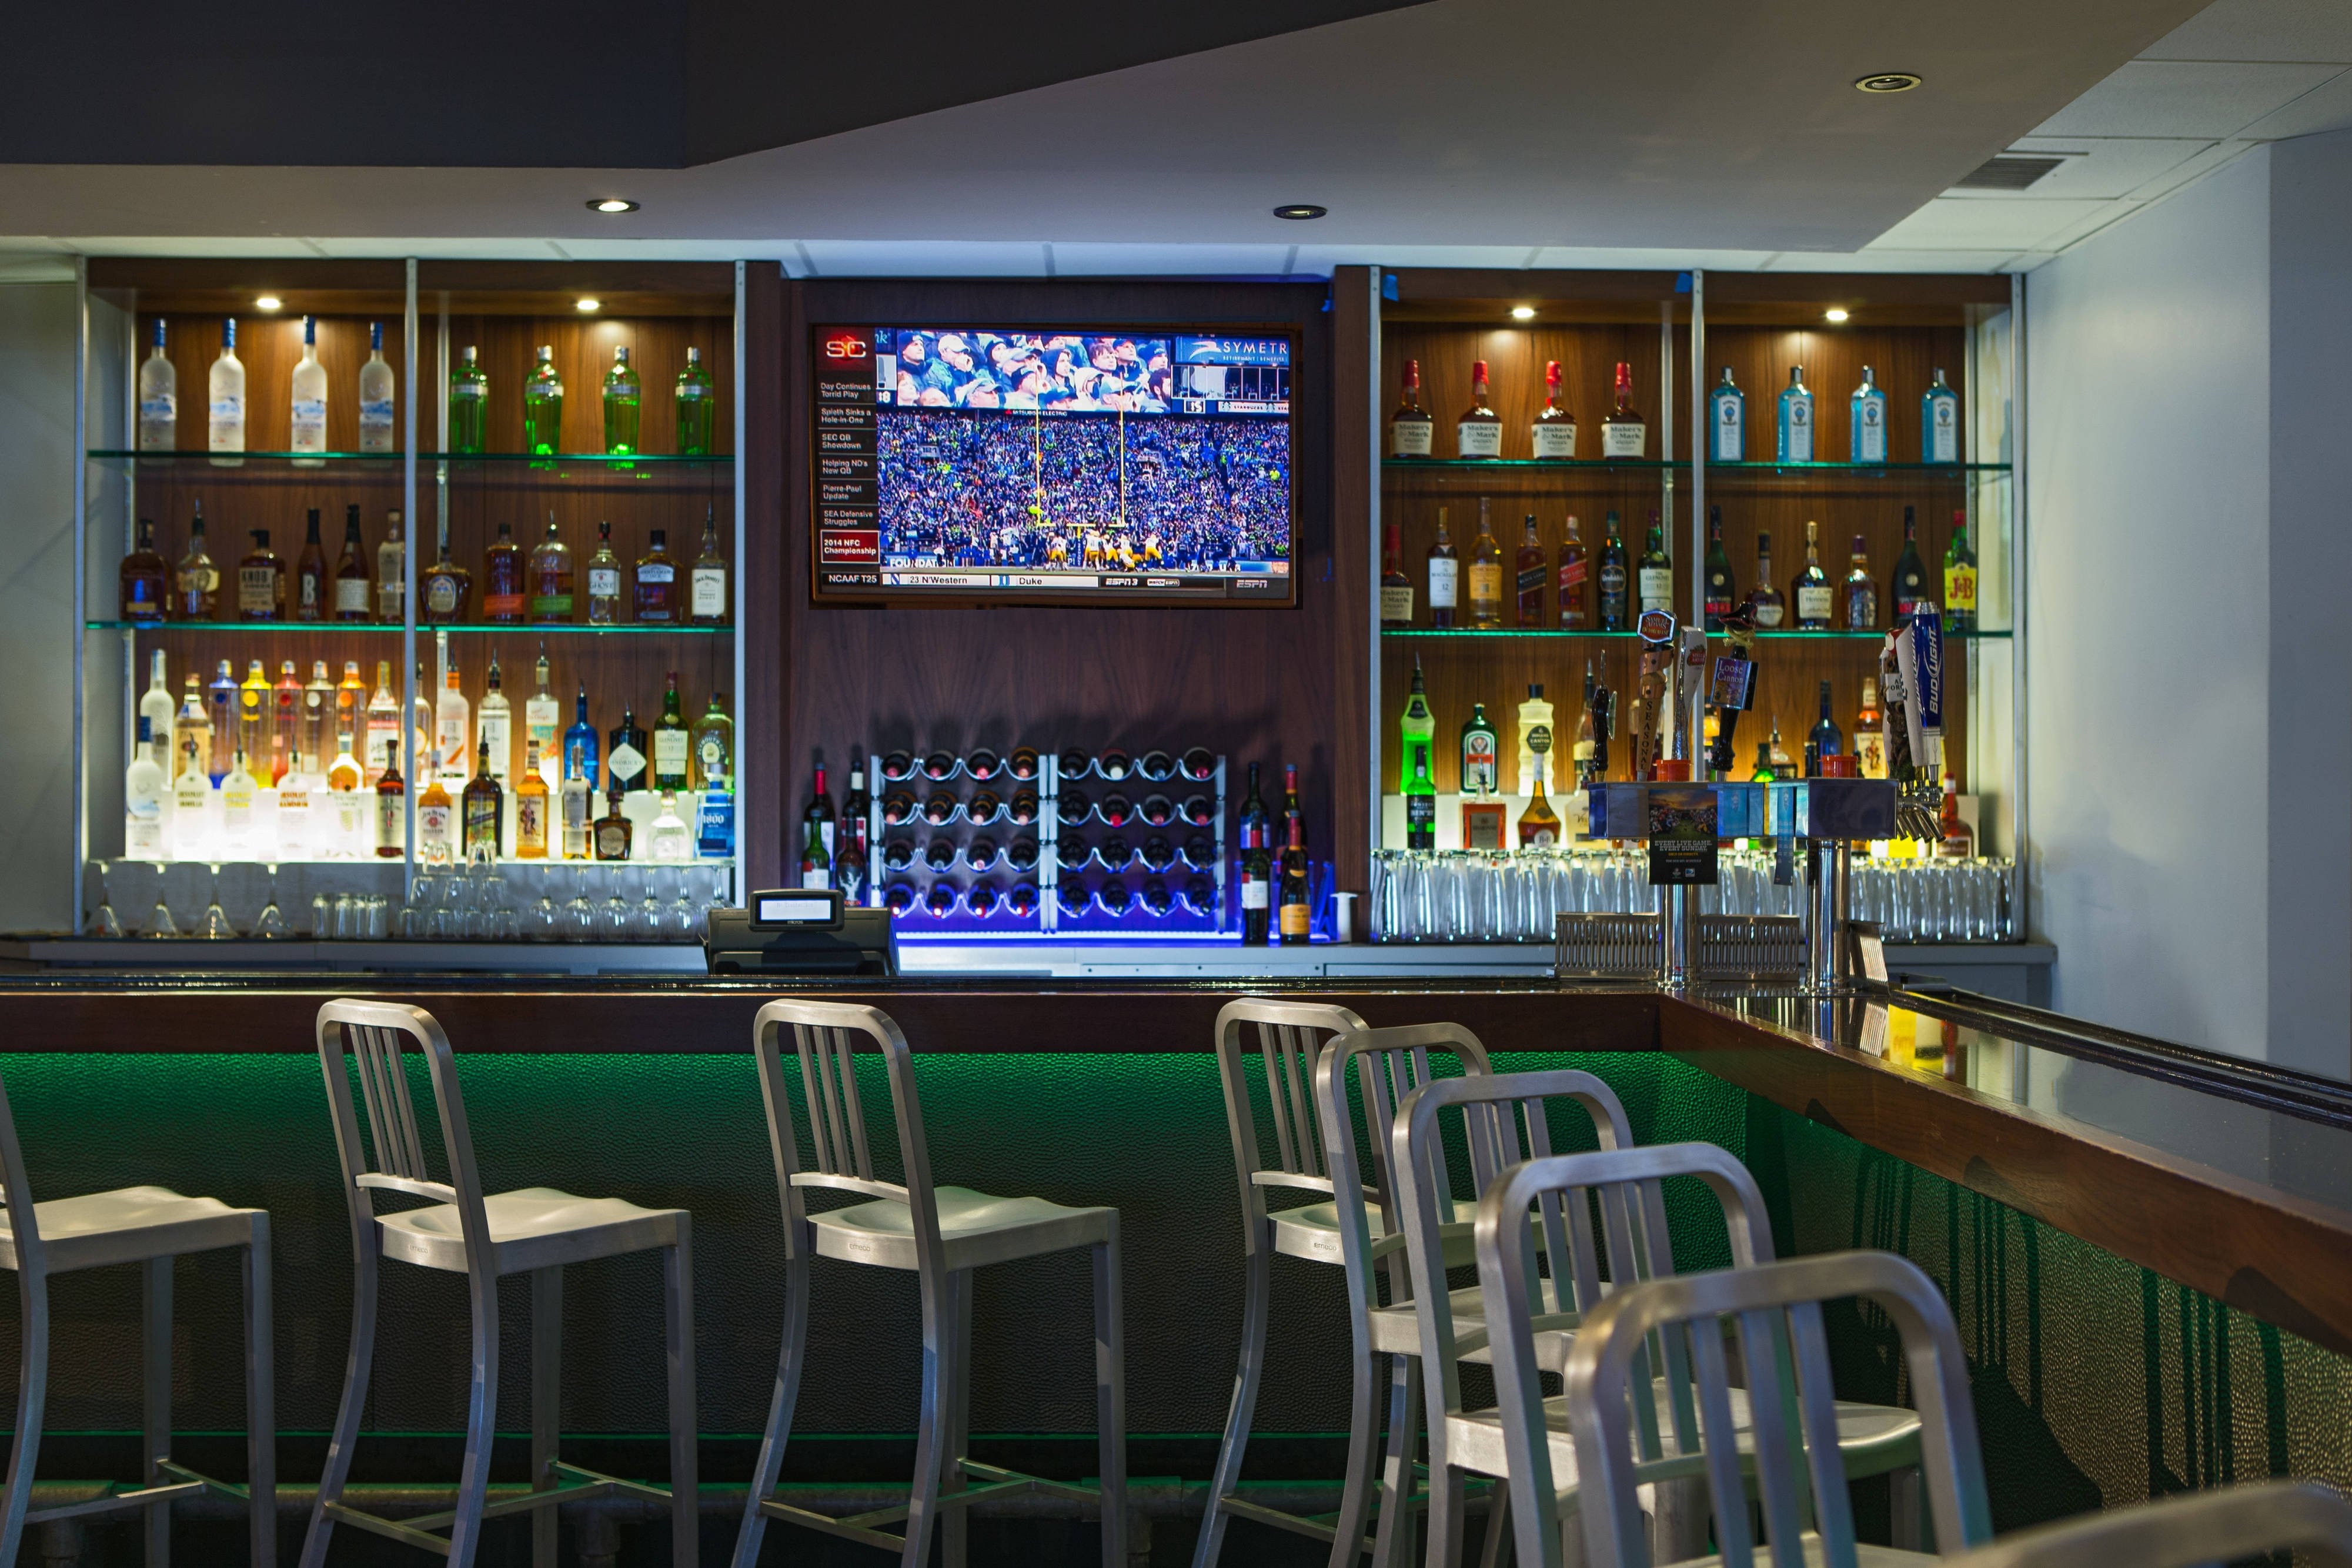 Linthicum Sports Bar and Restaurant